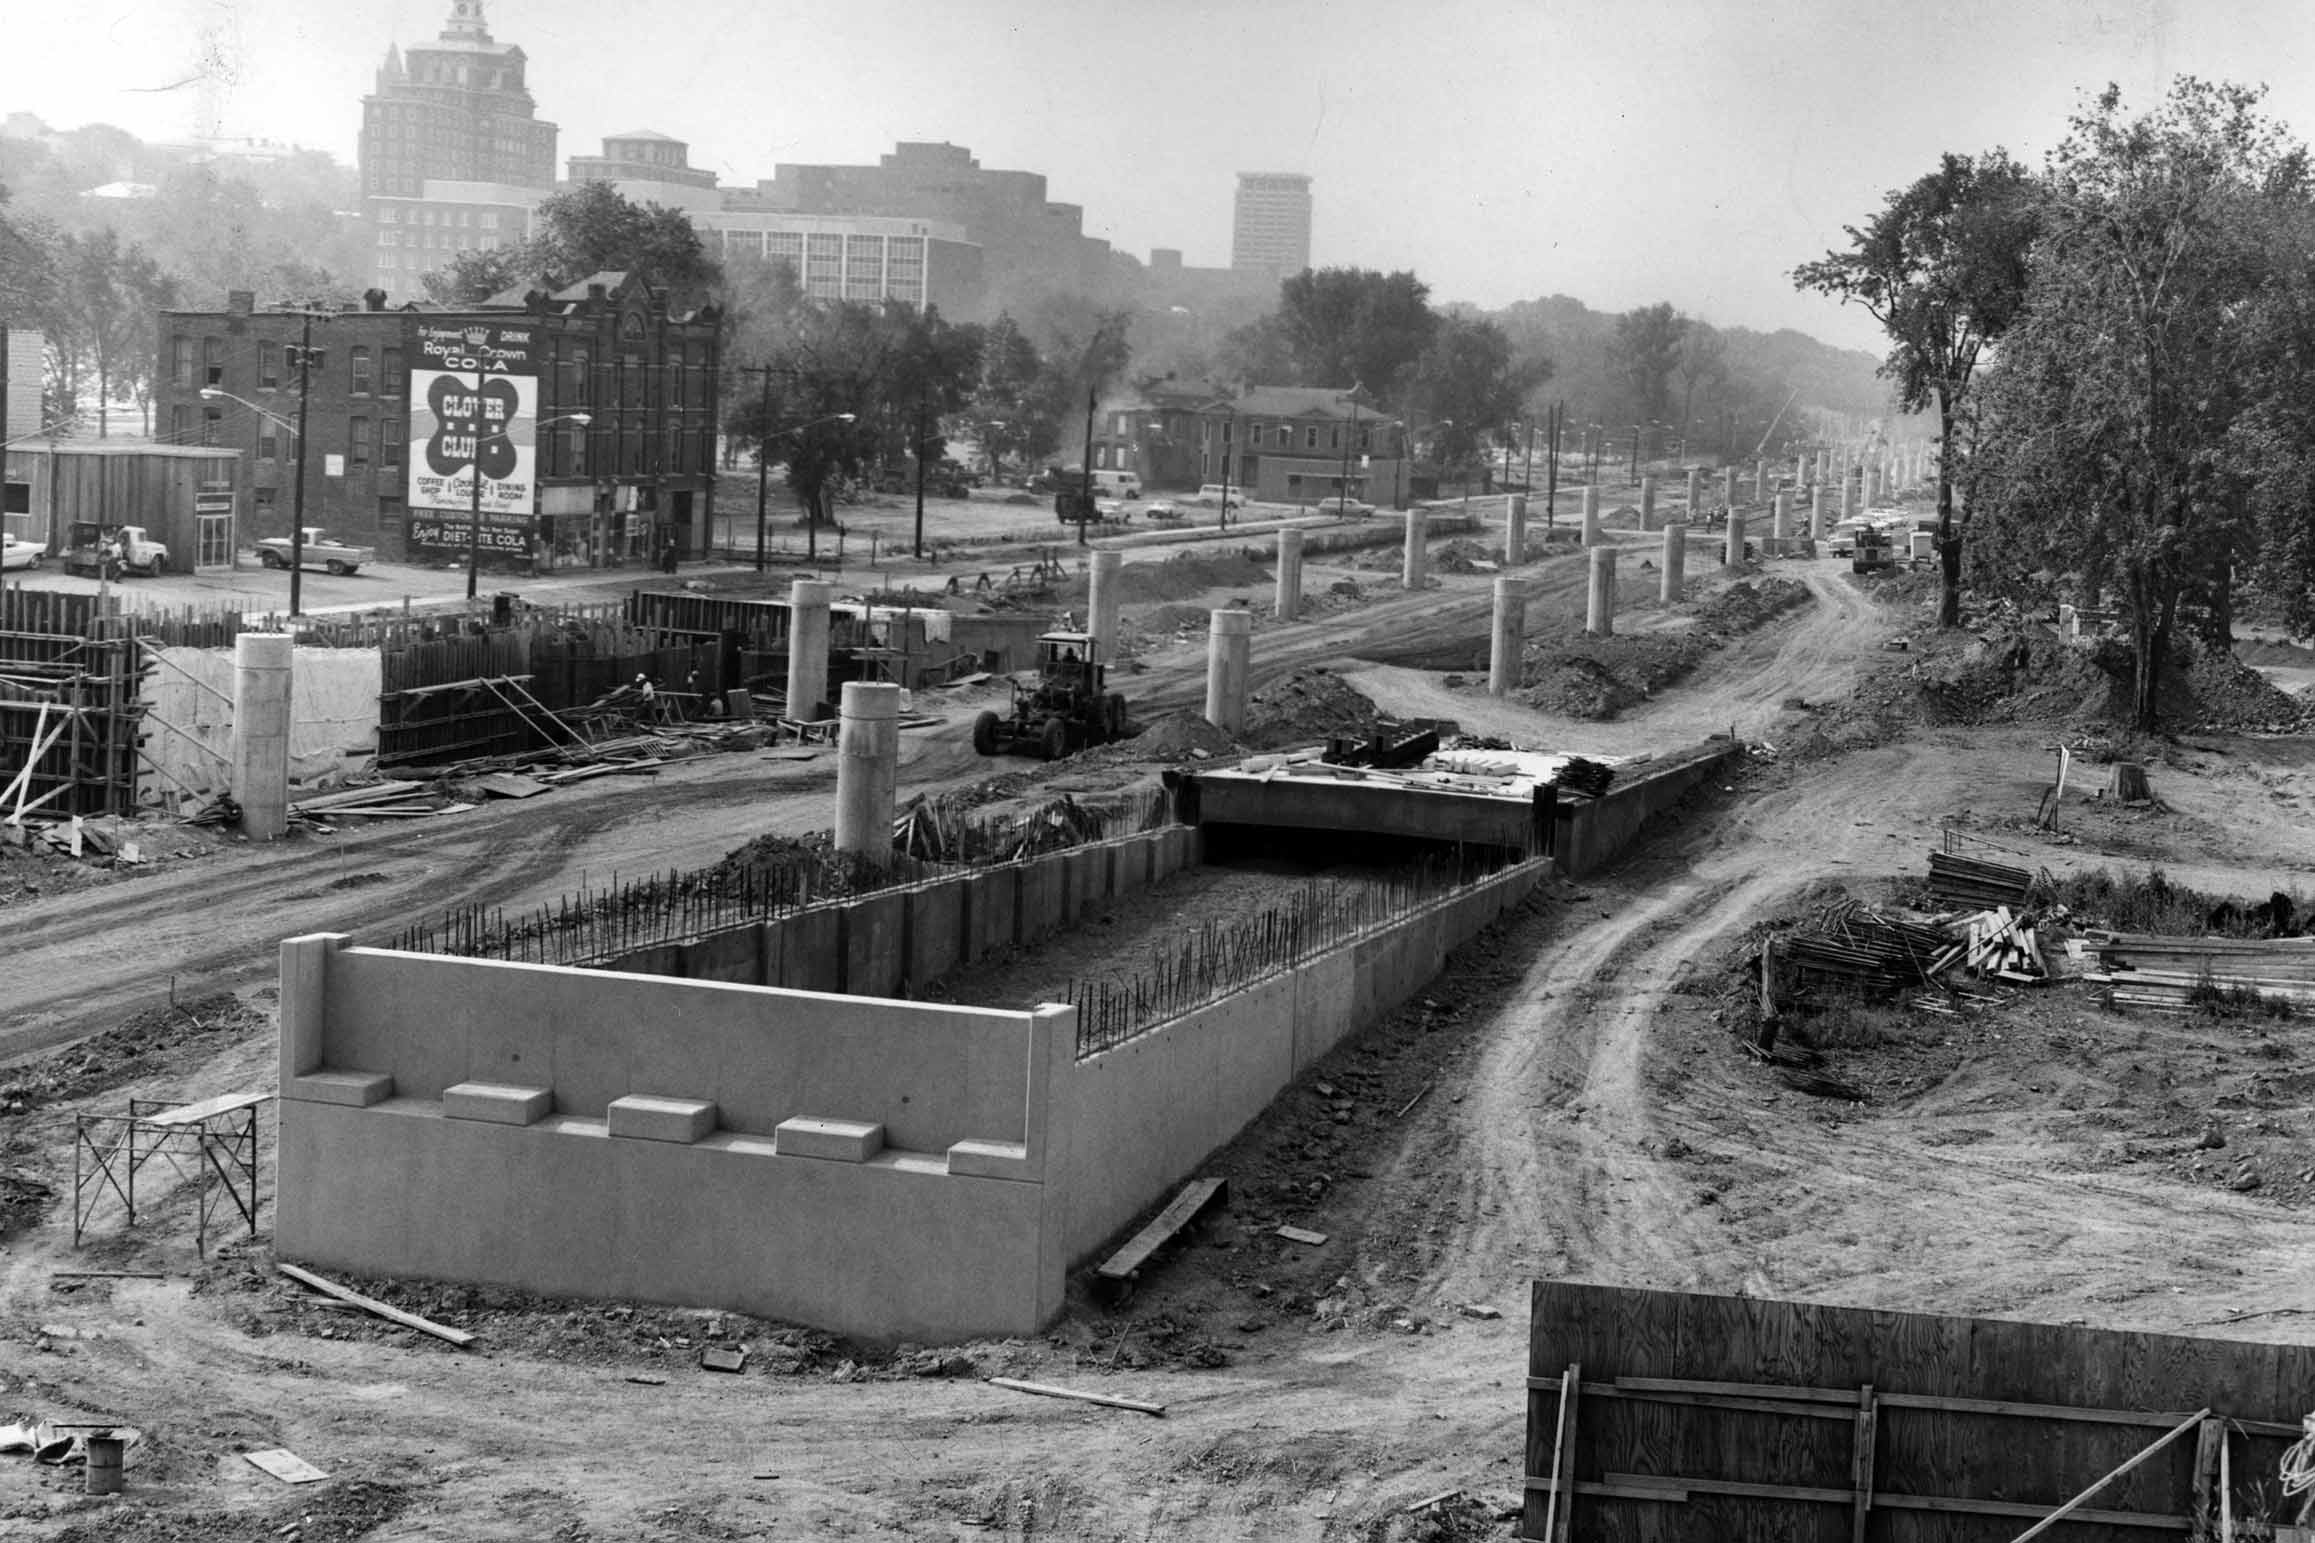 The construction of Interstate-81 through the 15th Ward in 1965.